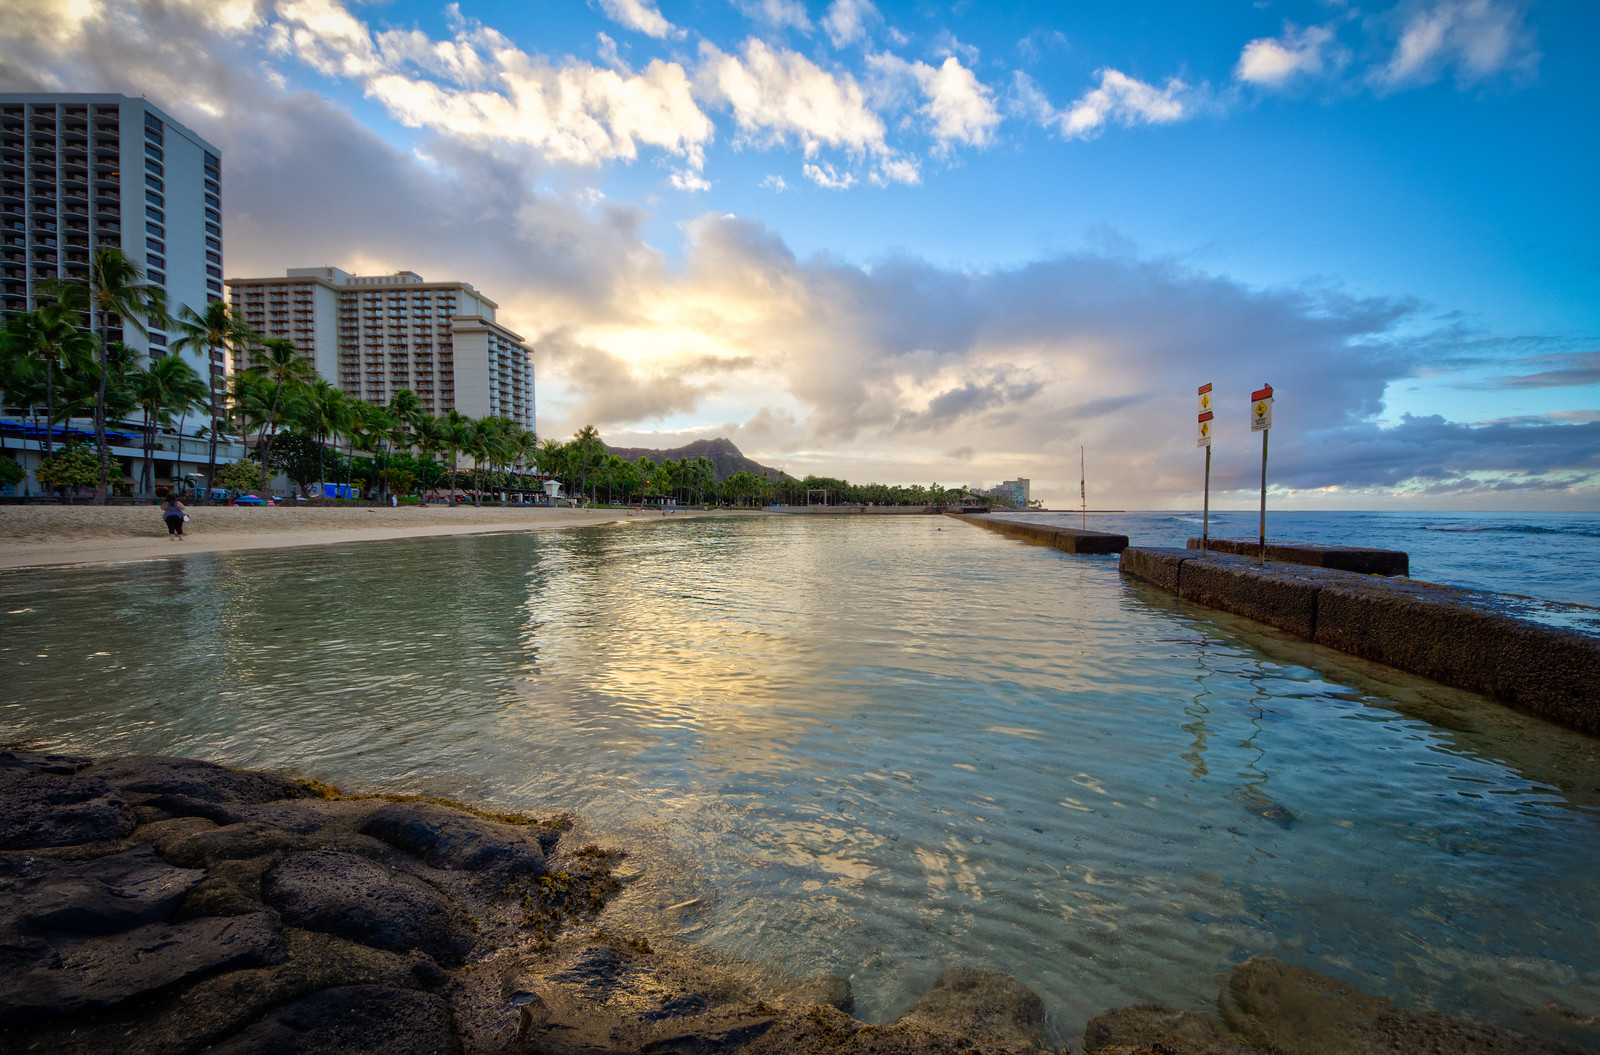 Morning in Waikiki